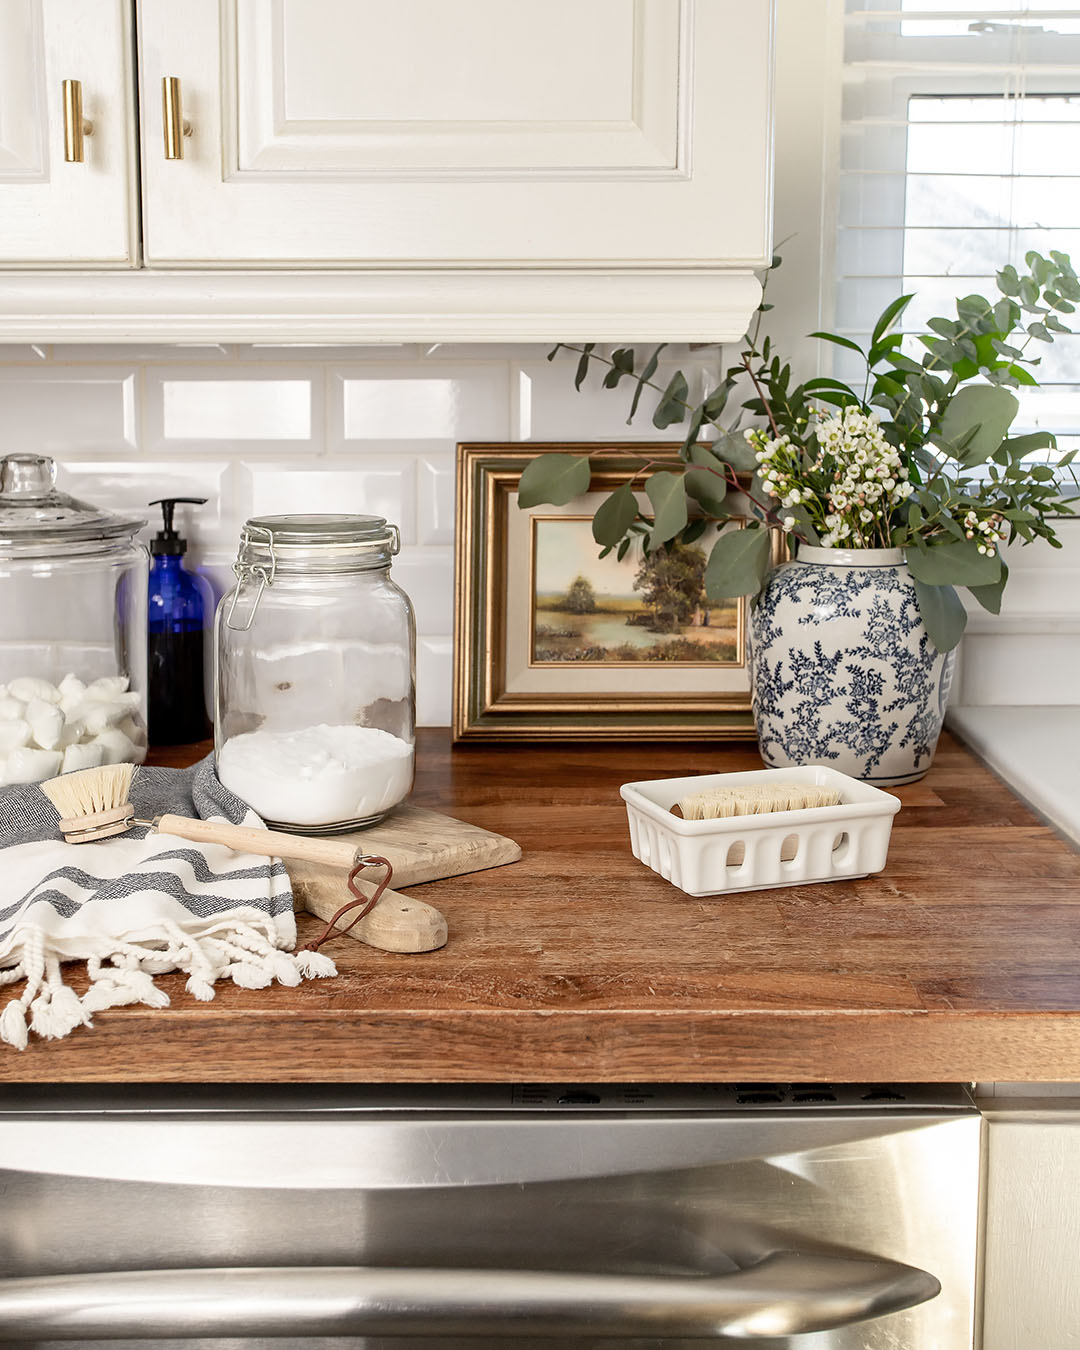 Do you ever wonder what you would do if you suddenly realized that you were out of dishwasher detergent? Of course, you could just wash everything by hand, but you'll probably like this little trick even better. Here's what to use instead of dishwasher detergent or tabs!